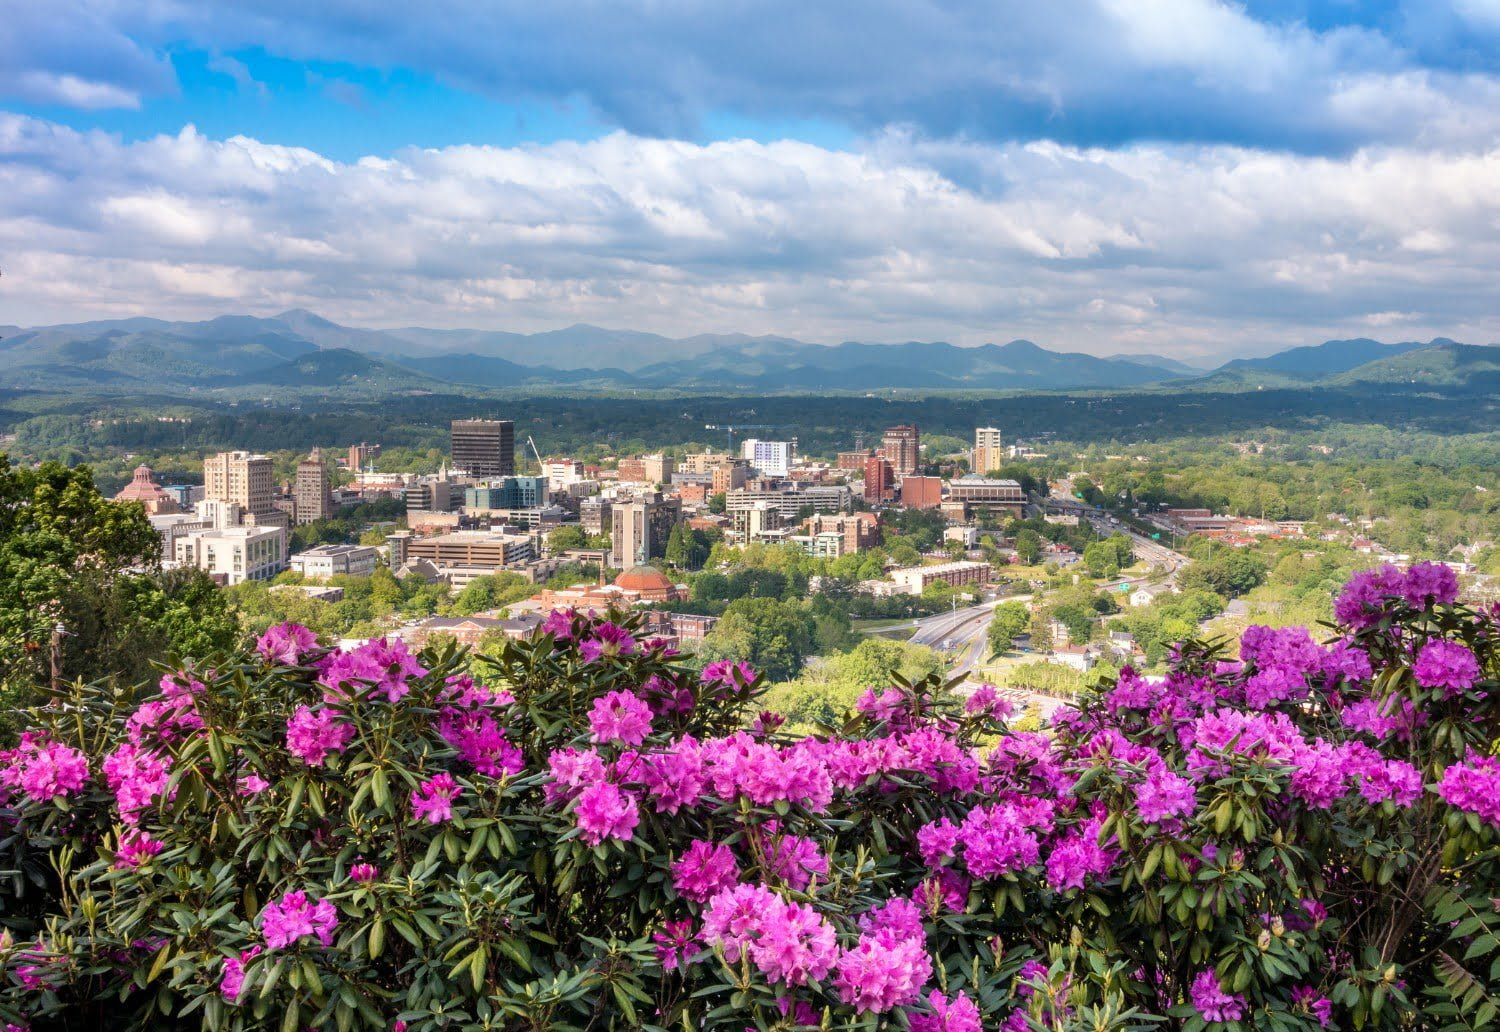 asheville in the spring, Things to Do in Western NC